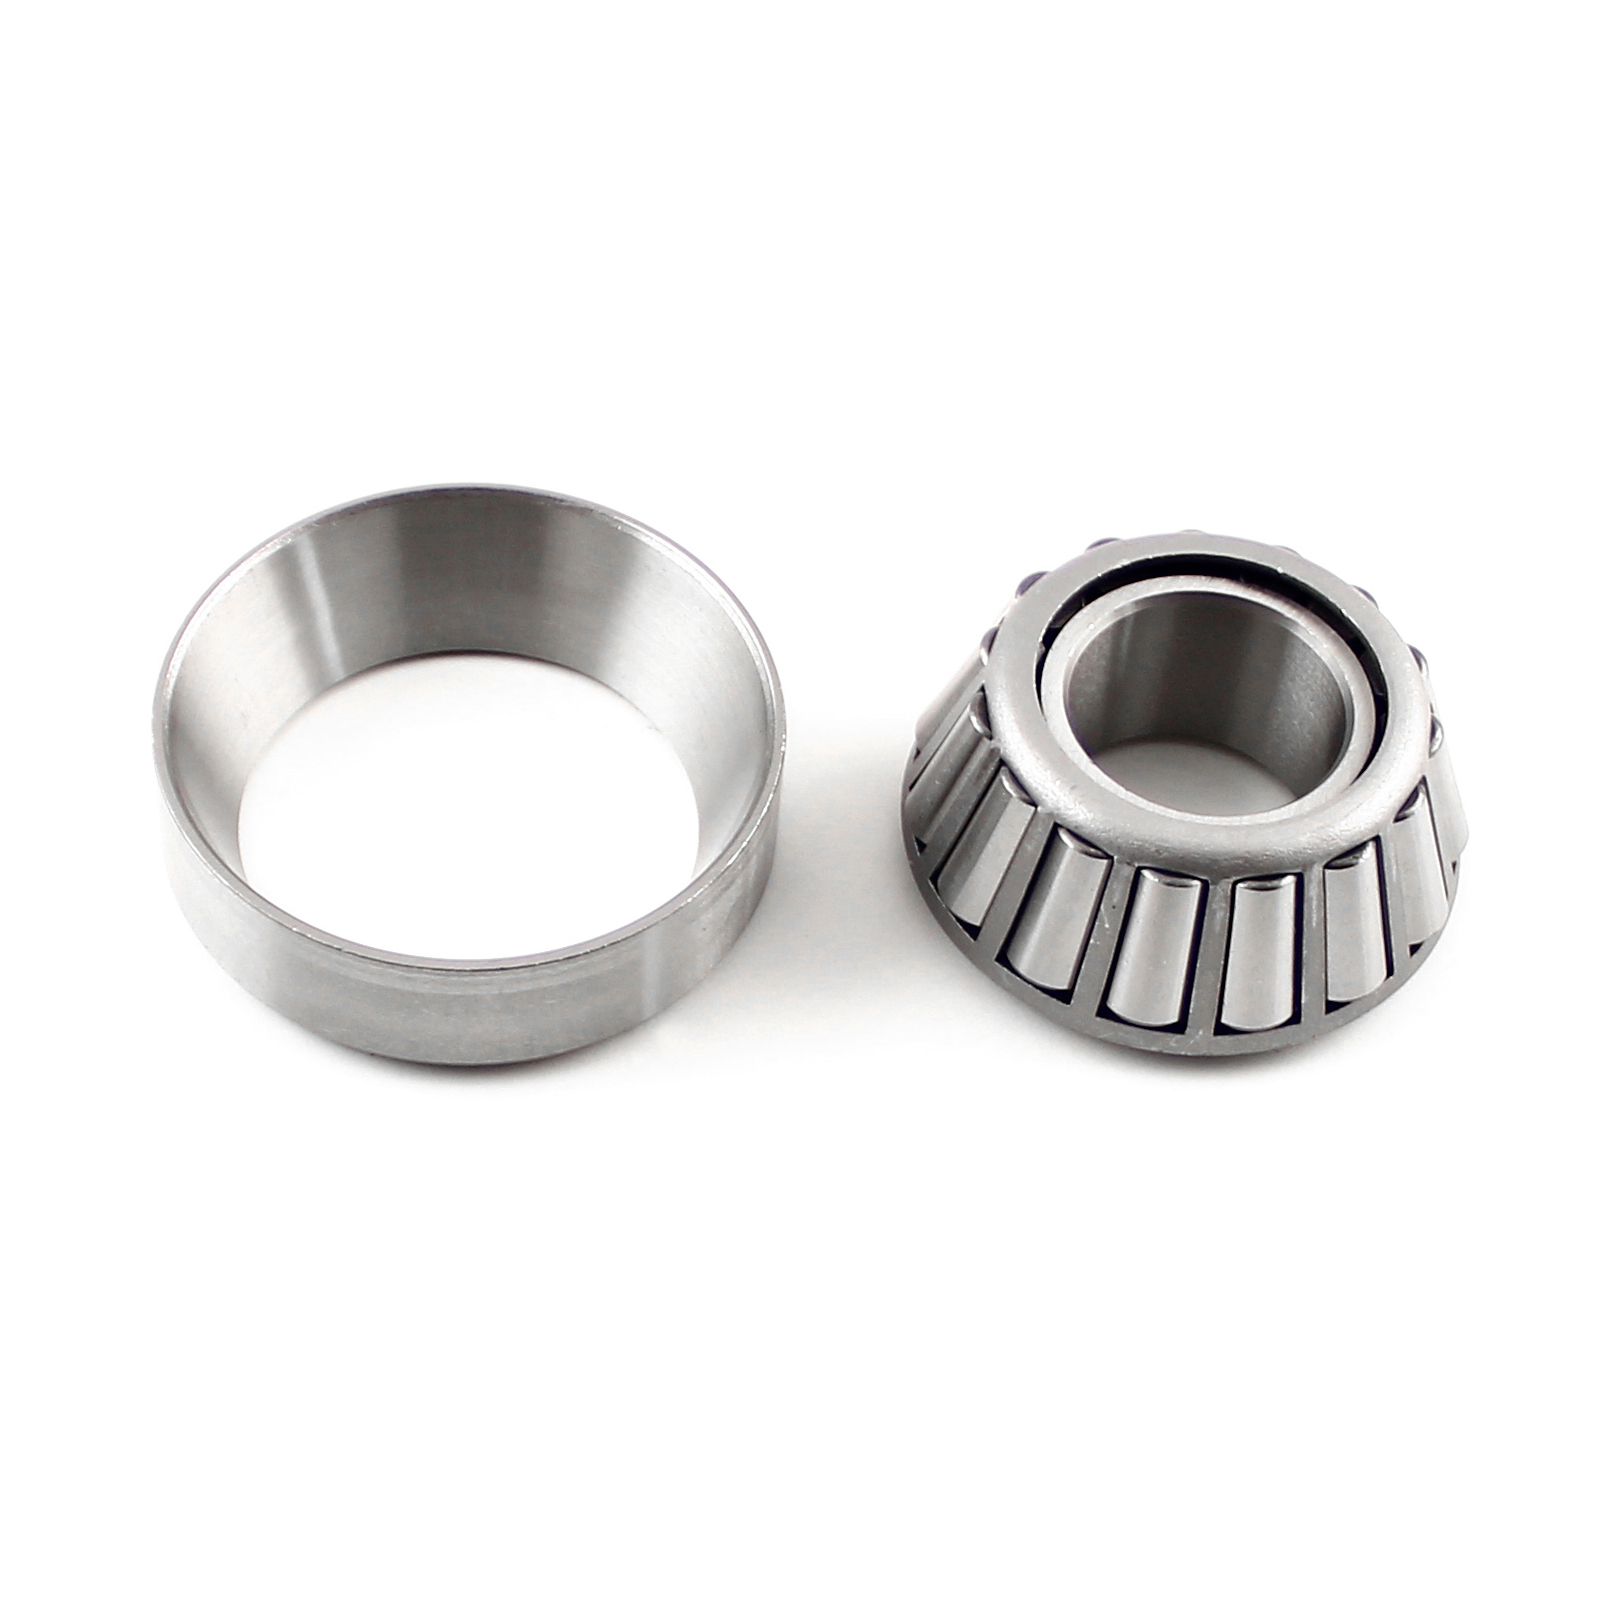 Pinion Bearing Industry Std Ref: HM89443 / HM89410